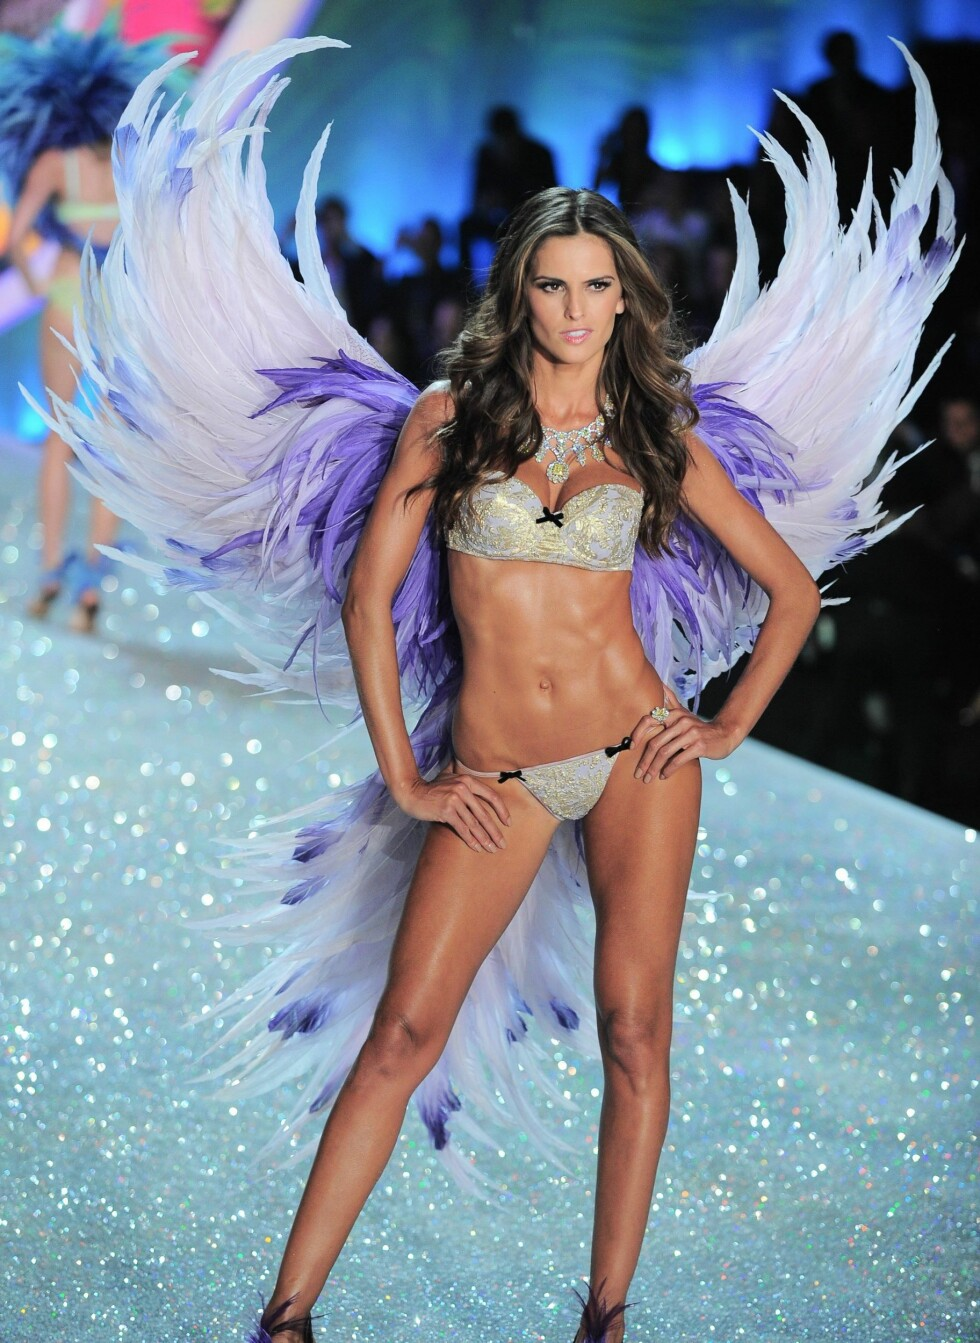 Izabel Goulart on the runway for Victorias Secret Fashion Show 2014 - Runway, Lexington Avenue Armory, New York, NY November 13, 2013. Photo By: Gregorio T. Binuya/Everett Collection  All Over Press *** Local Caption *** 2.02642591 Foto: All Over Press